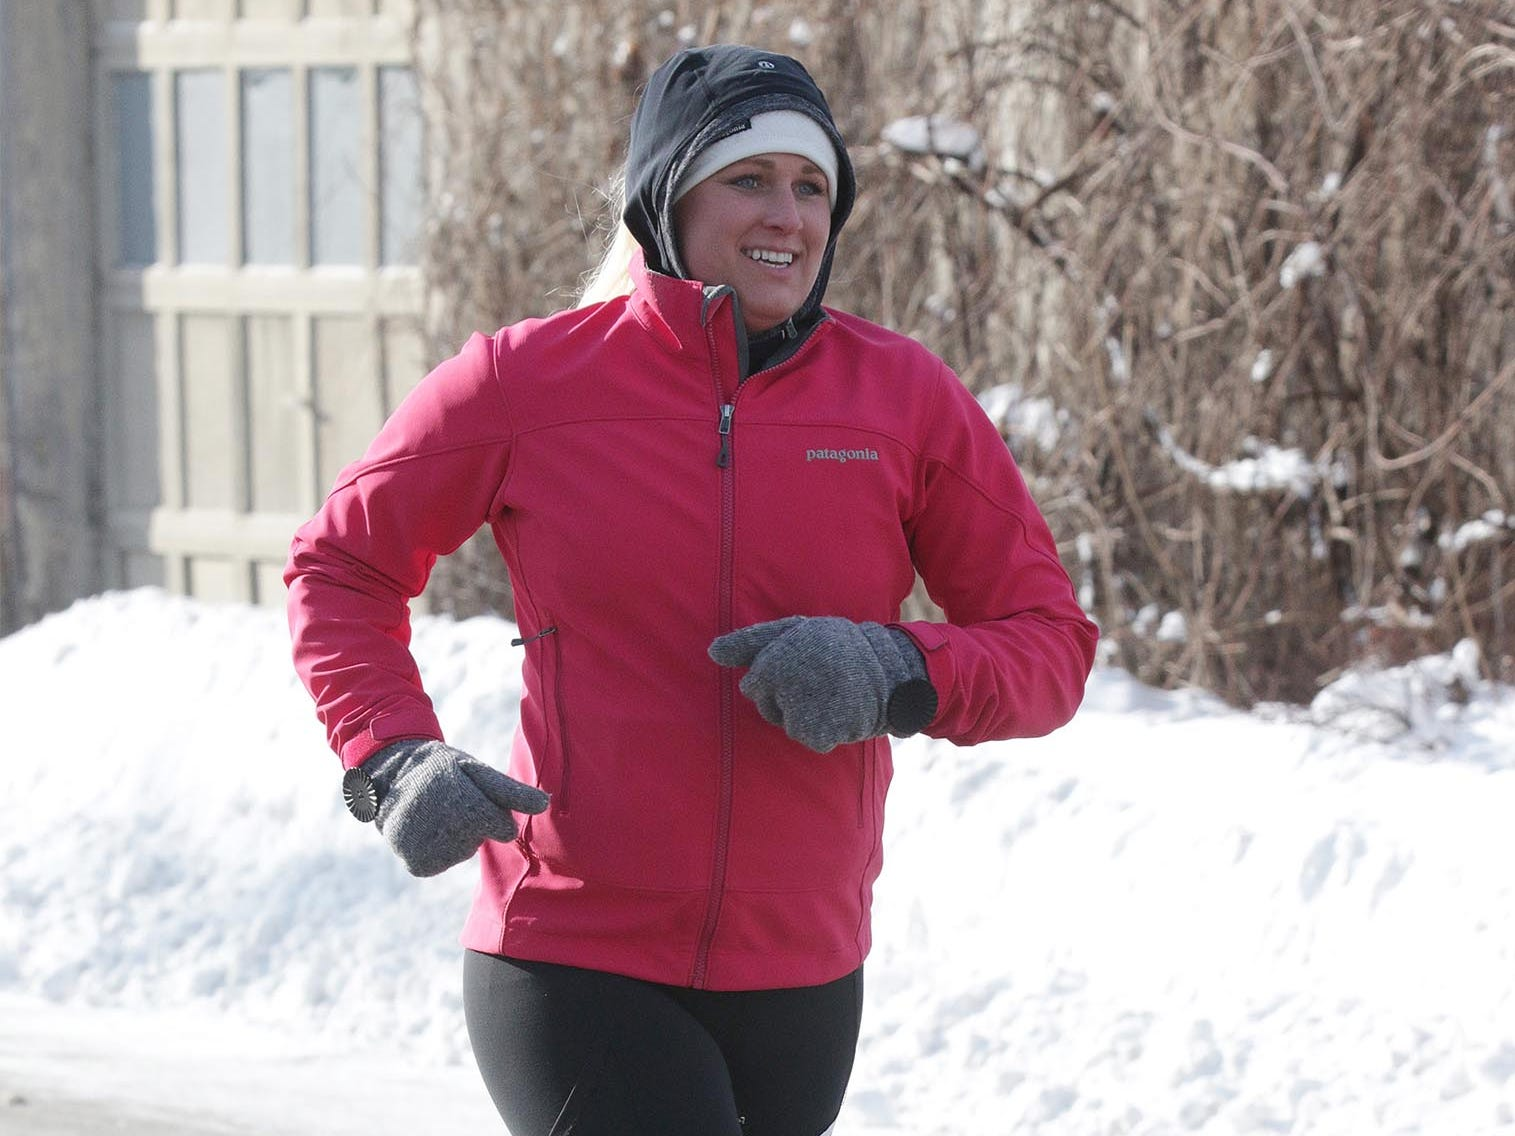 Jenna Schram (583) of Elkhart Lake runs during the 2-miles Schneelauf Run, Saturday, January 26, 2019, in Elkhart Lake, Wis. Schram won the women's division with a time of 17:17